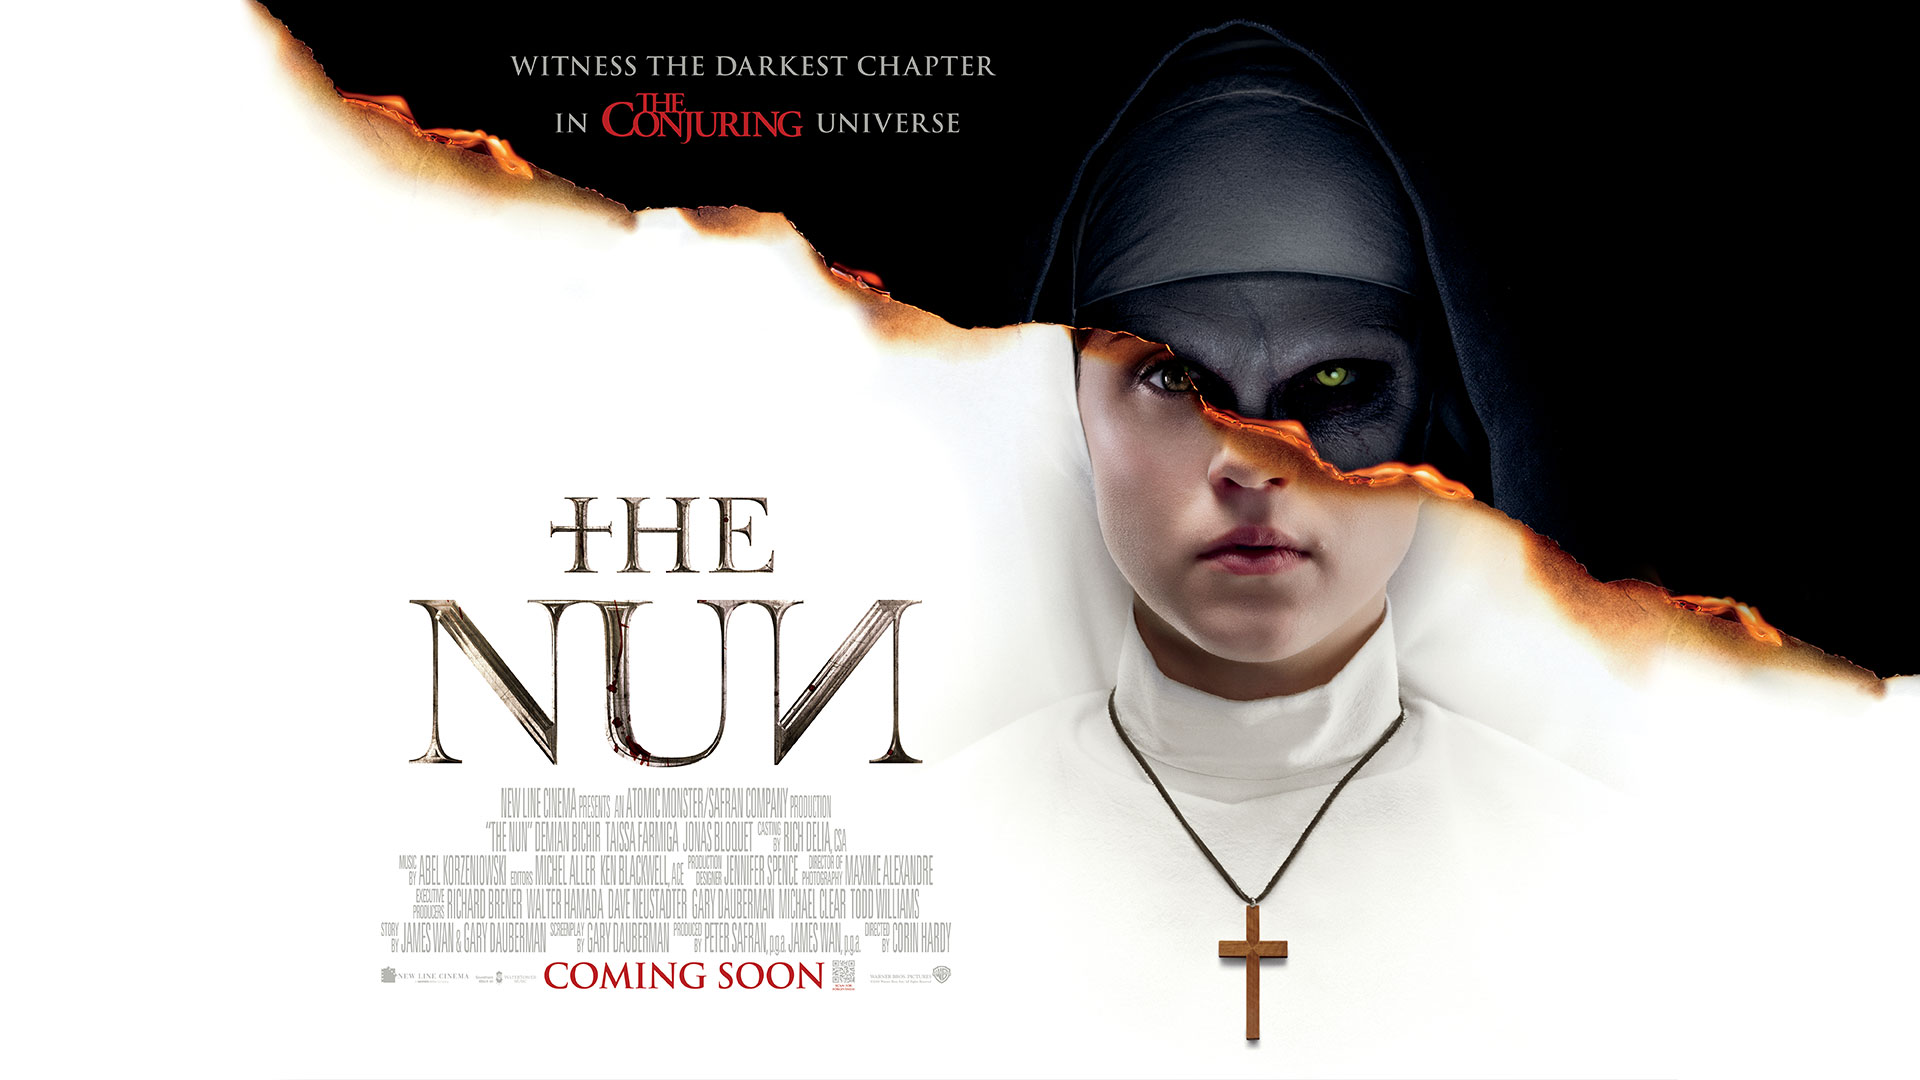 'Nun, The' - landscape artwork